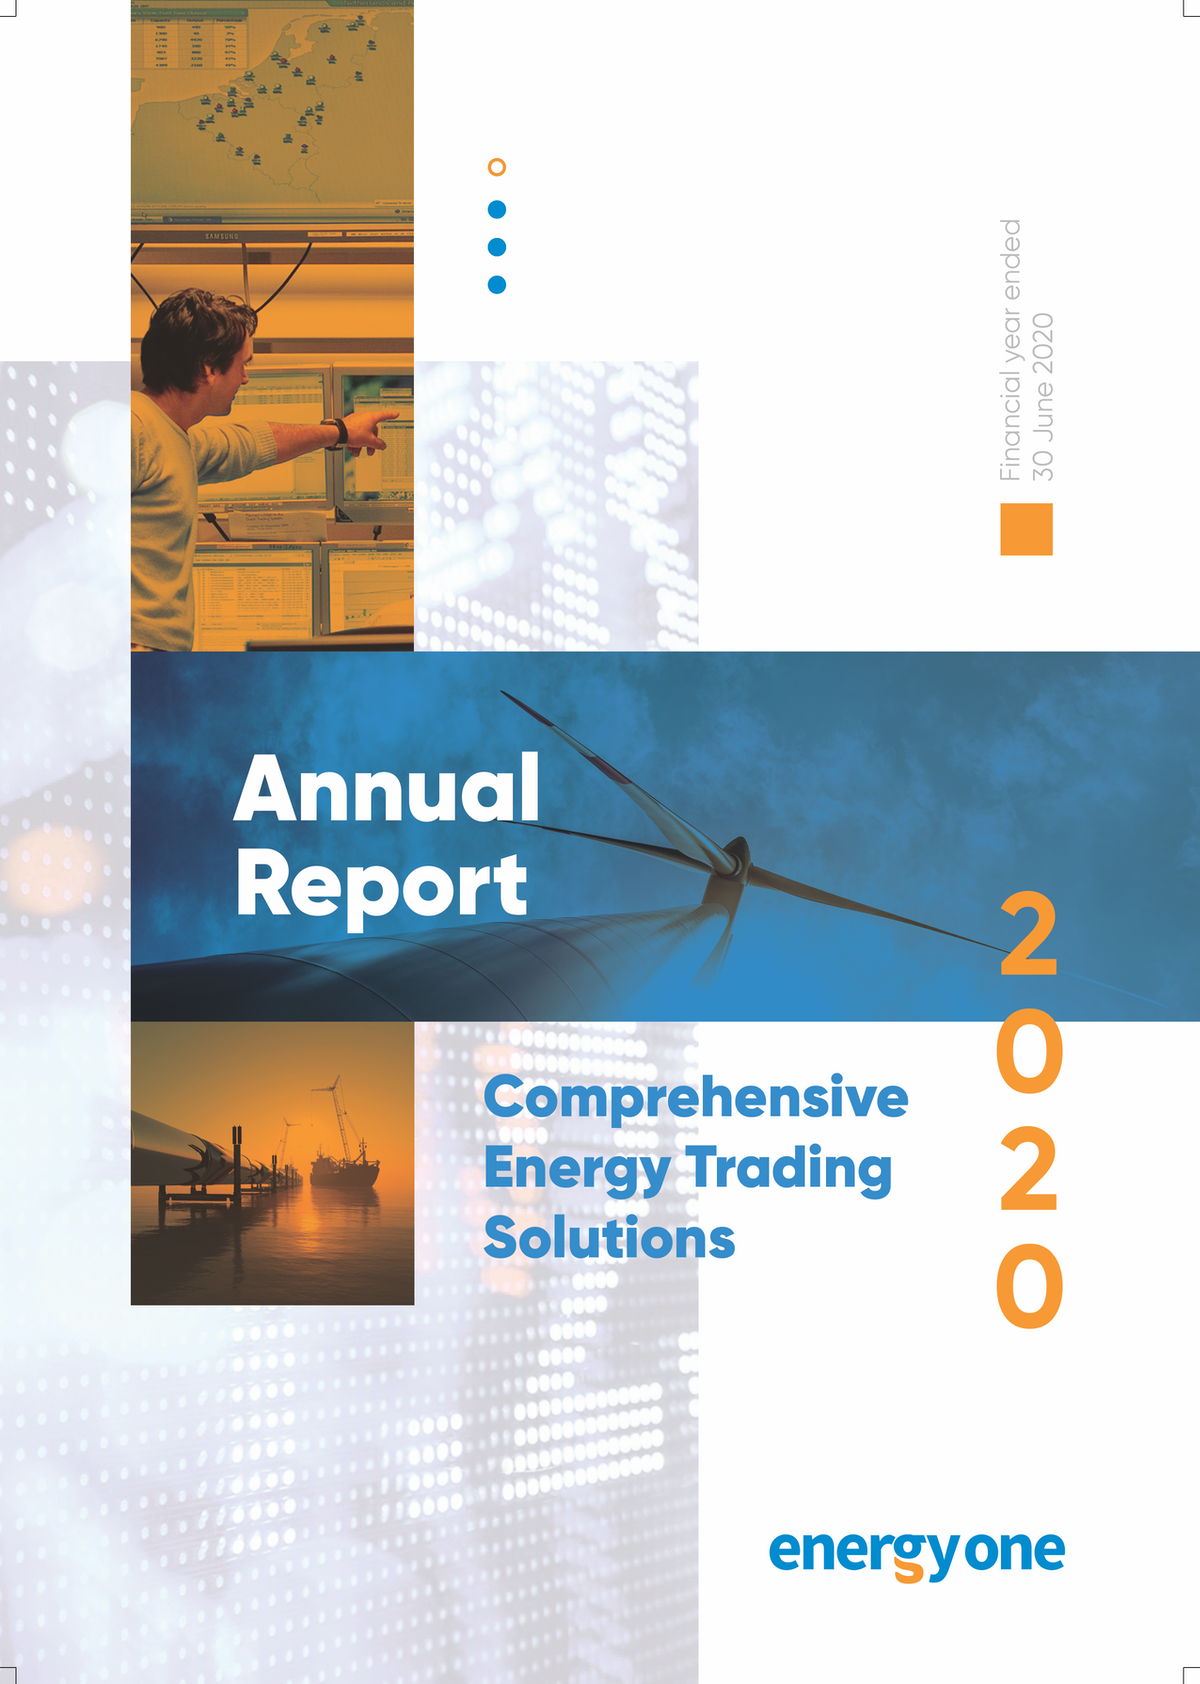 Annual Report Cover for Australian Energy Software Company